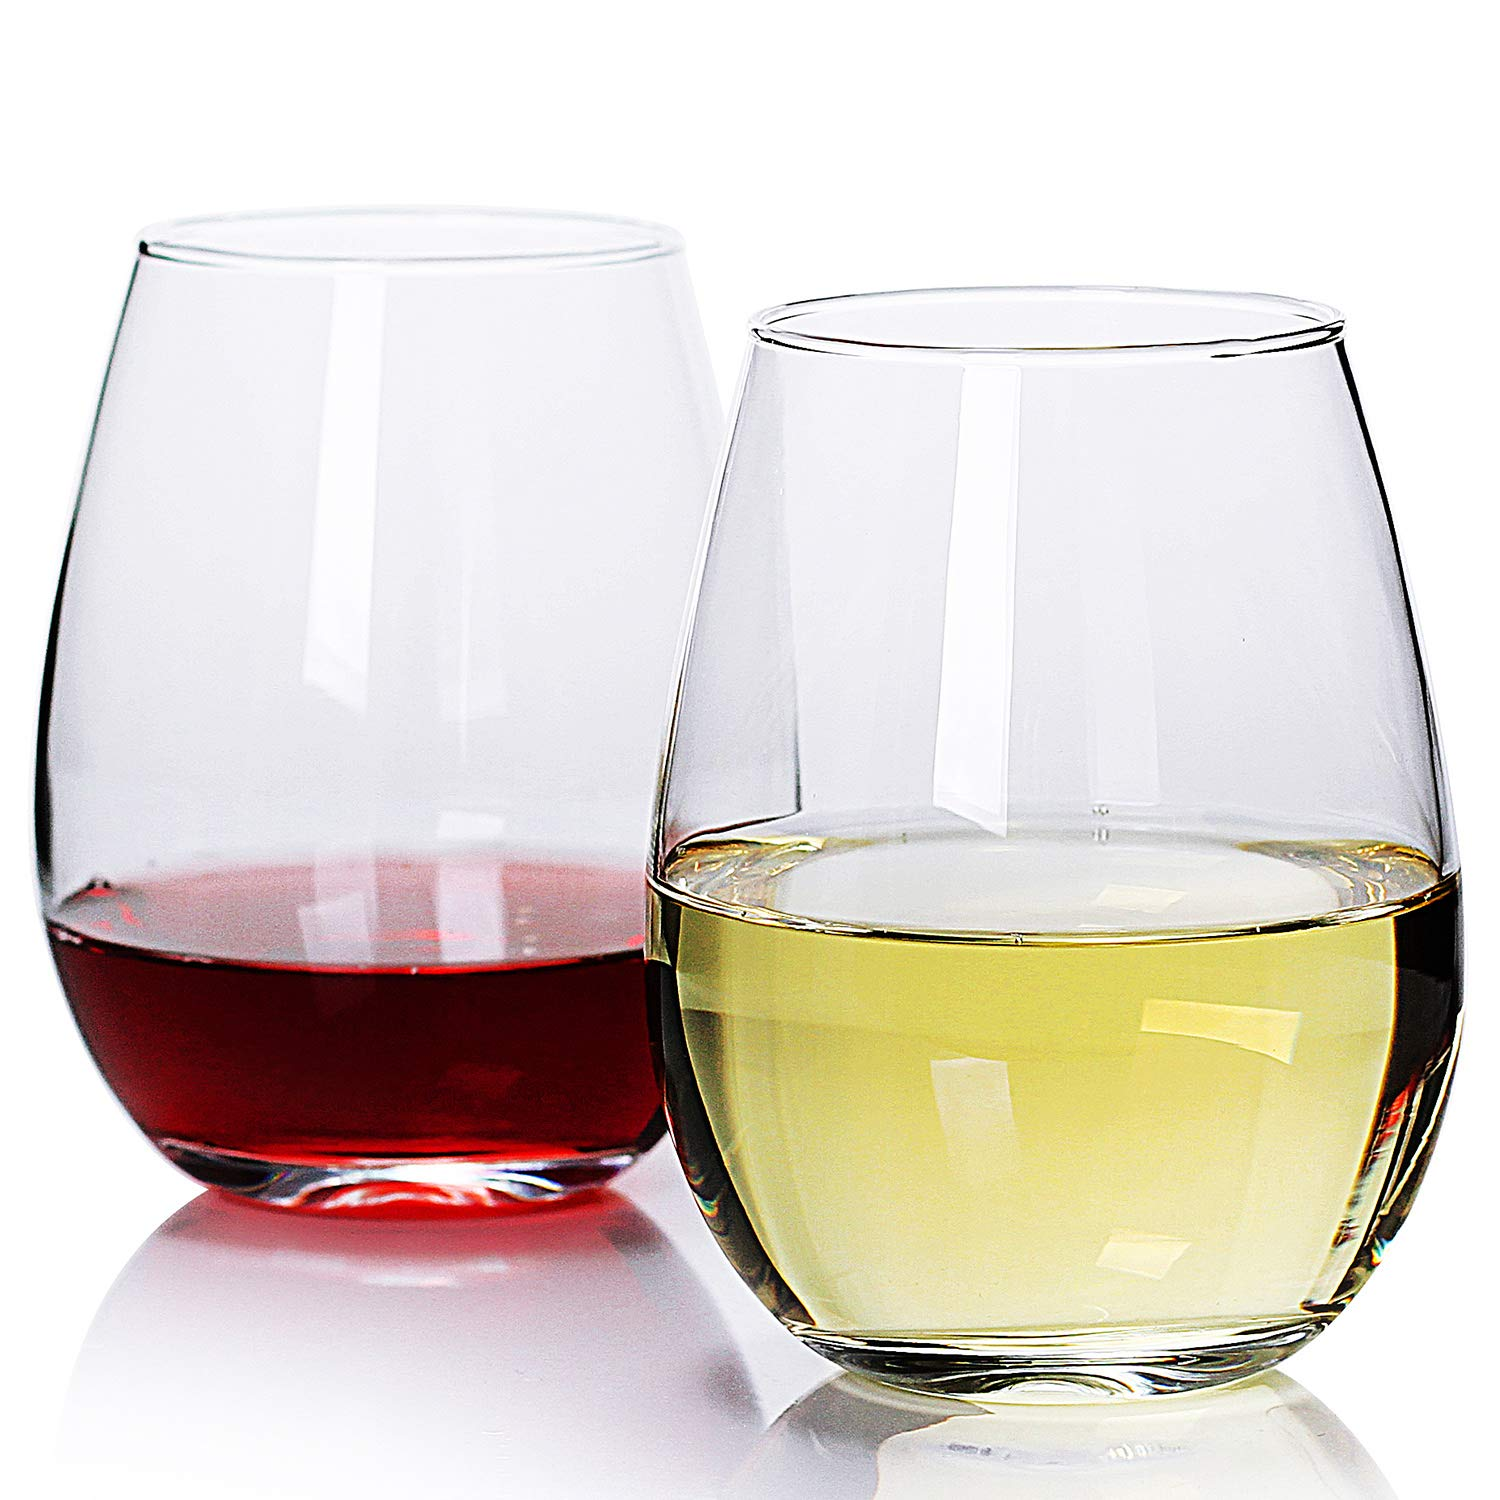 Bavel Stemless Wine Glasses,19oz,set of 4,Large Stemless Glass Holds Full Bottle of Wine.Red Wine /& White Wine glasses sets for retirement,gifts,clear